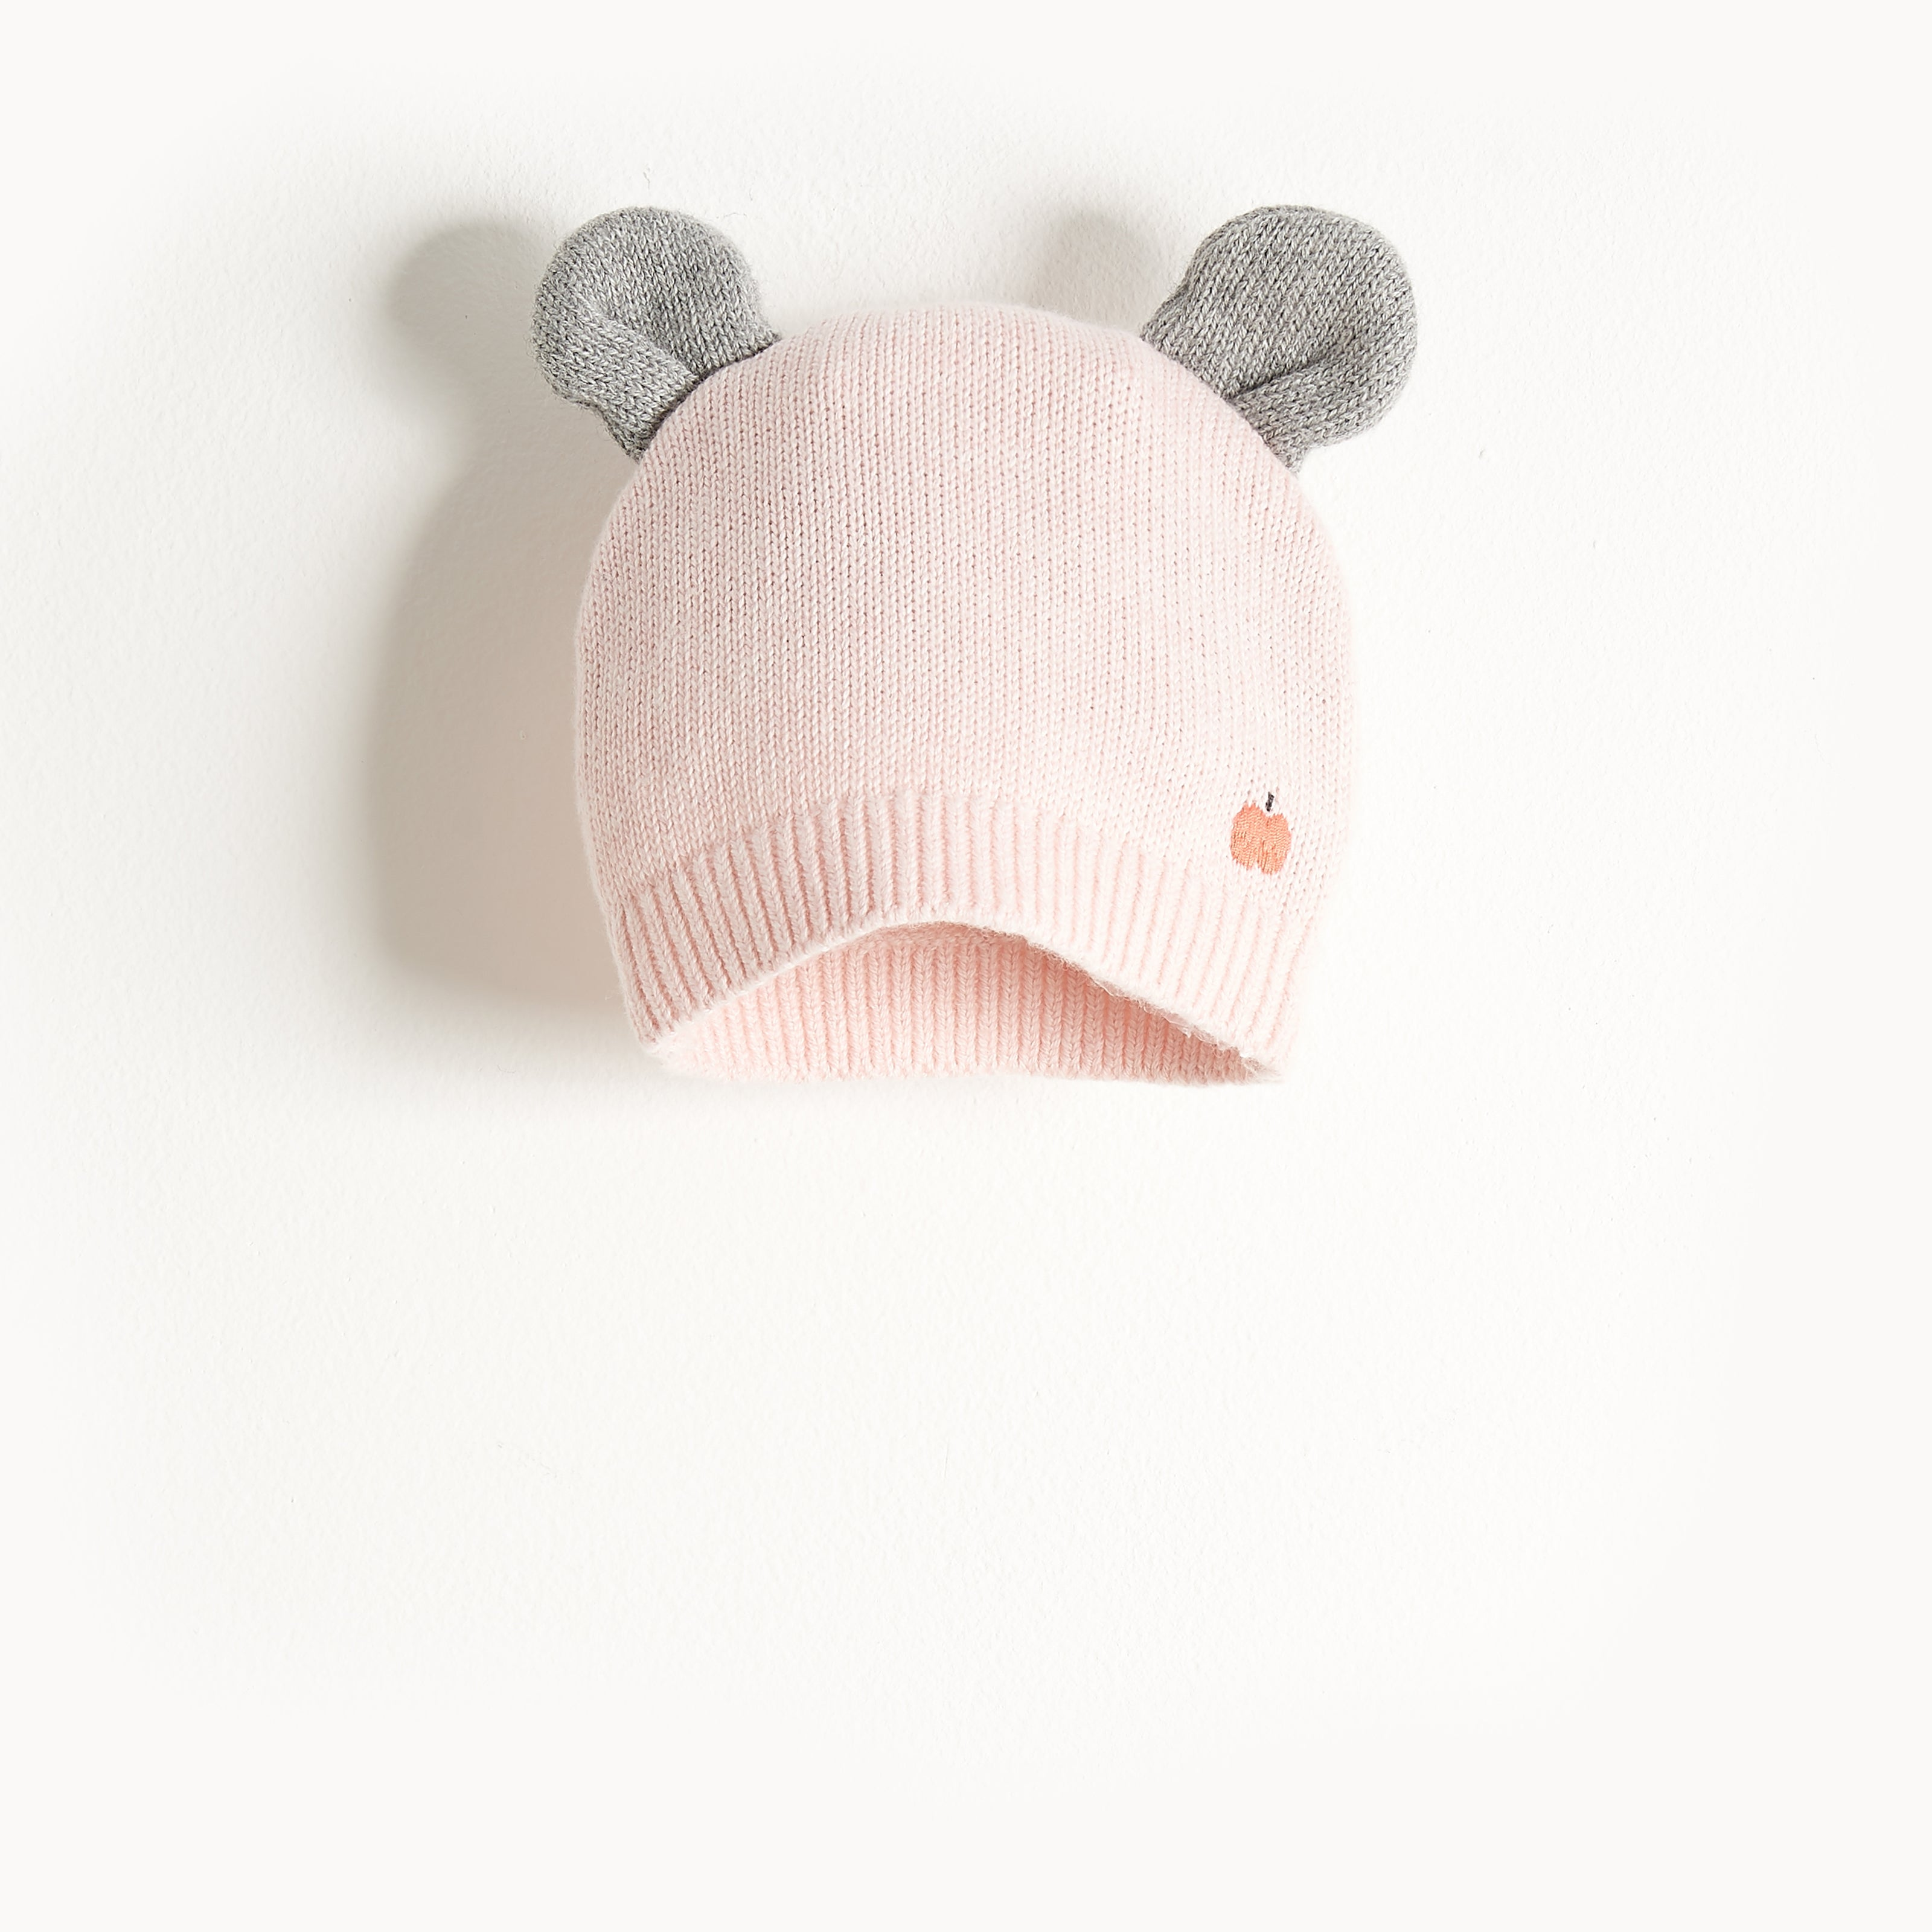 Bonnie Mob Puff Girls Hat With Ears